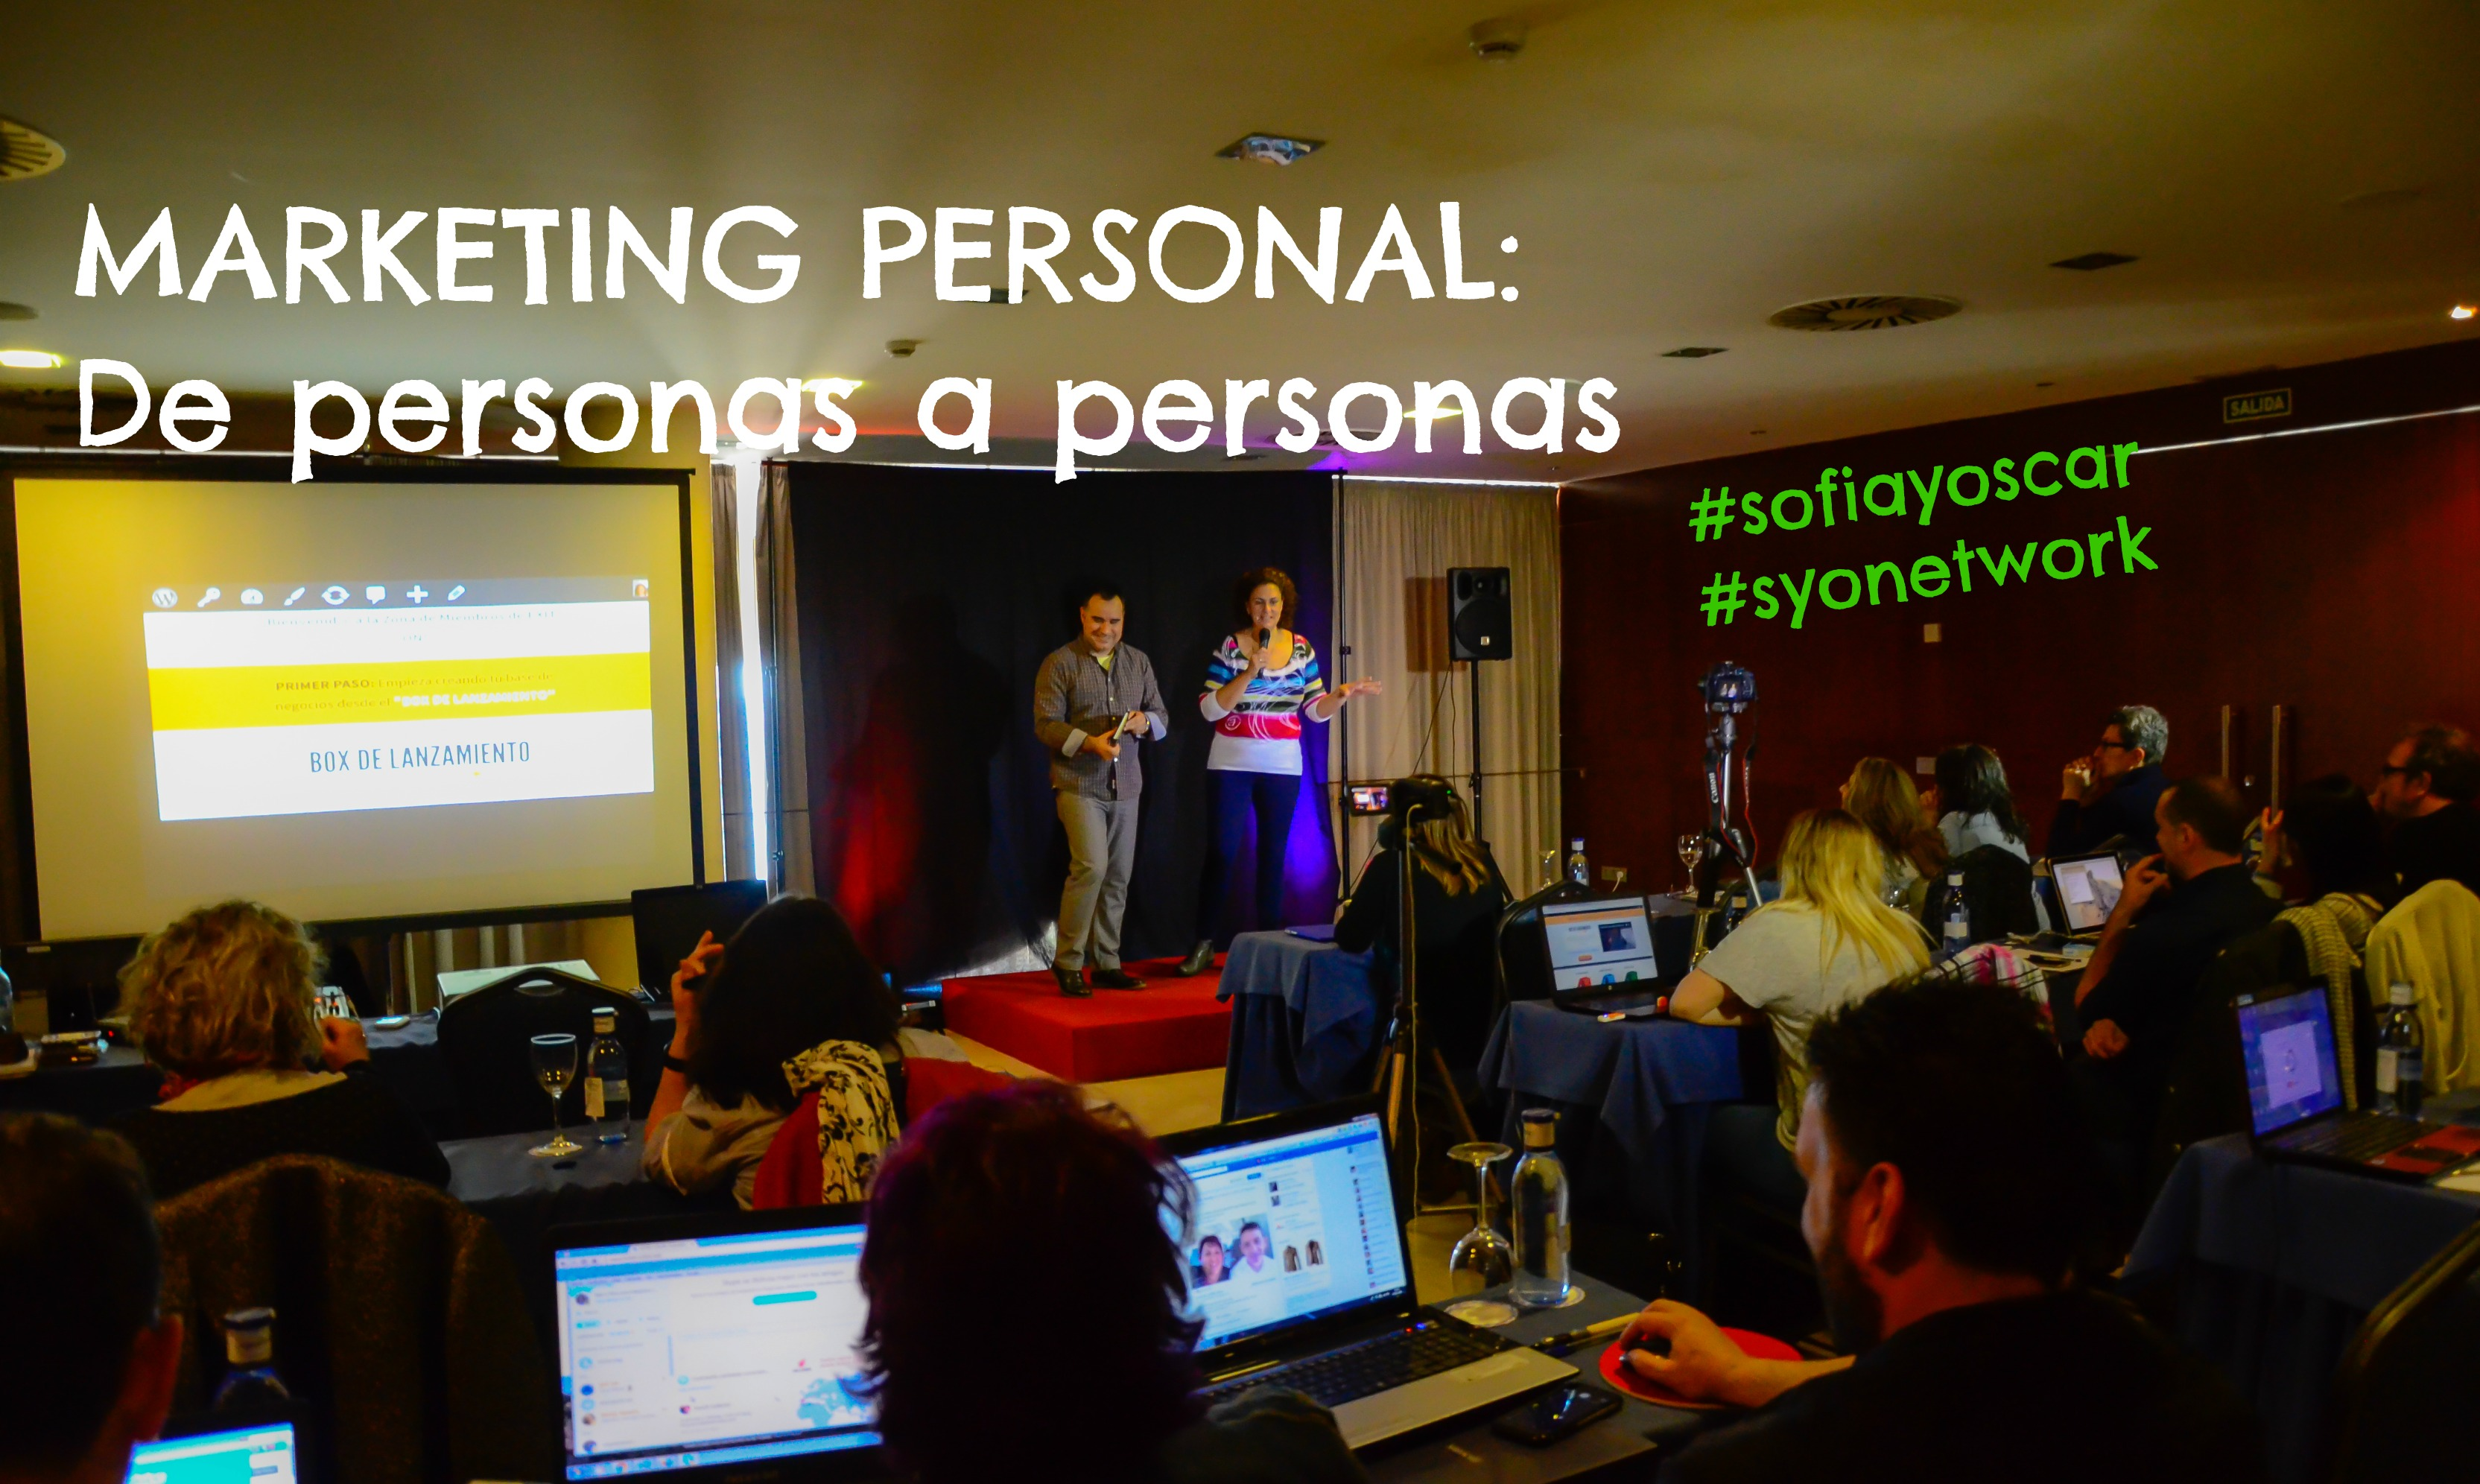 Marketing Personal: De personas a personas